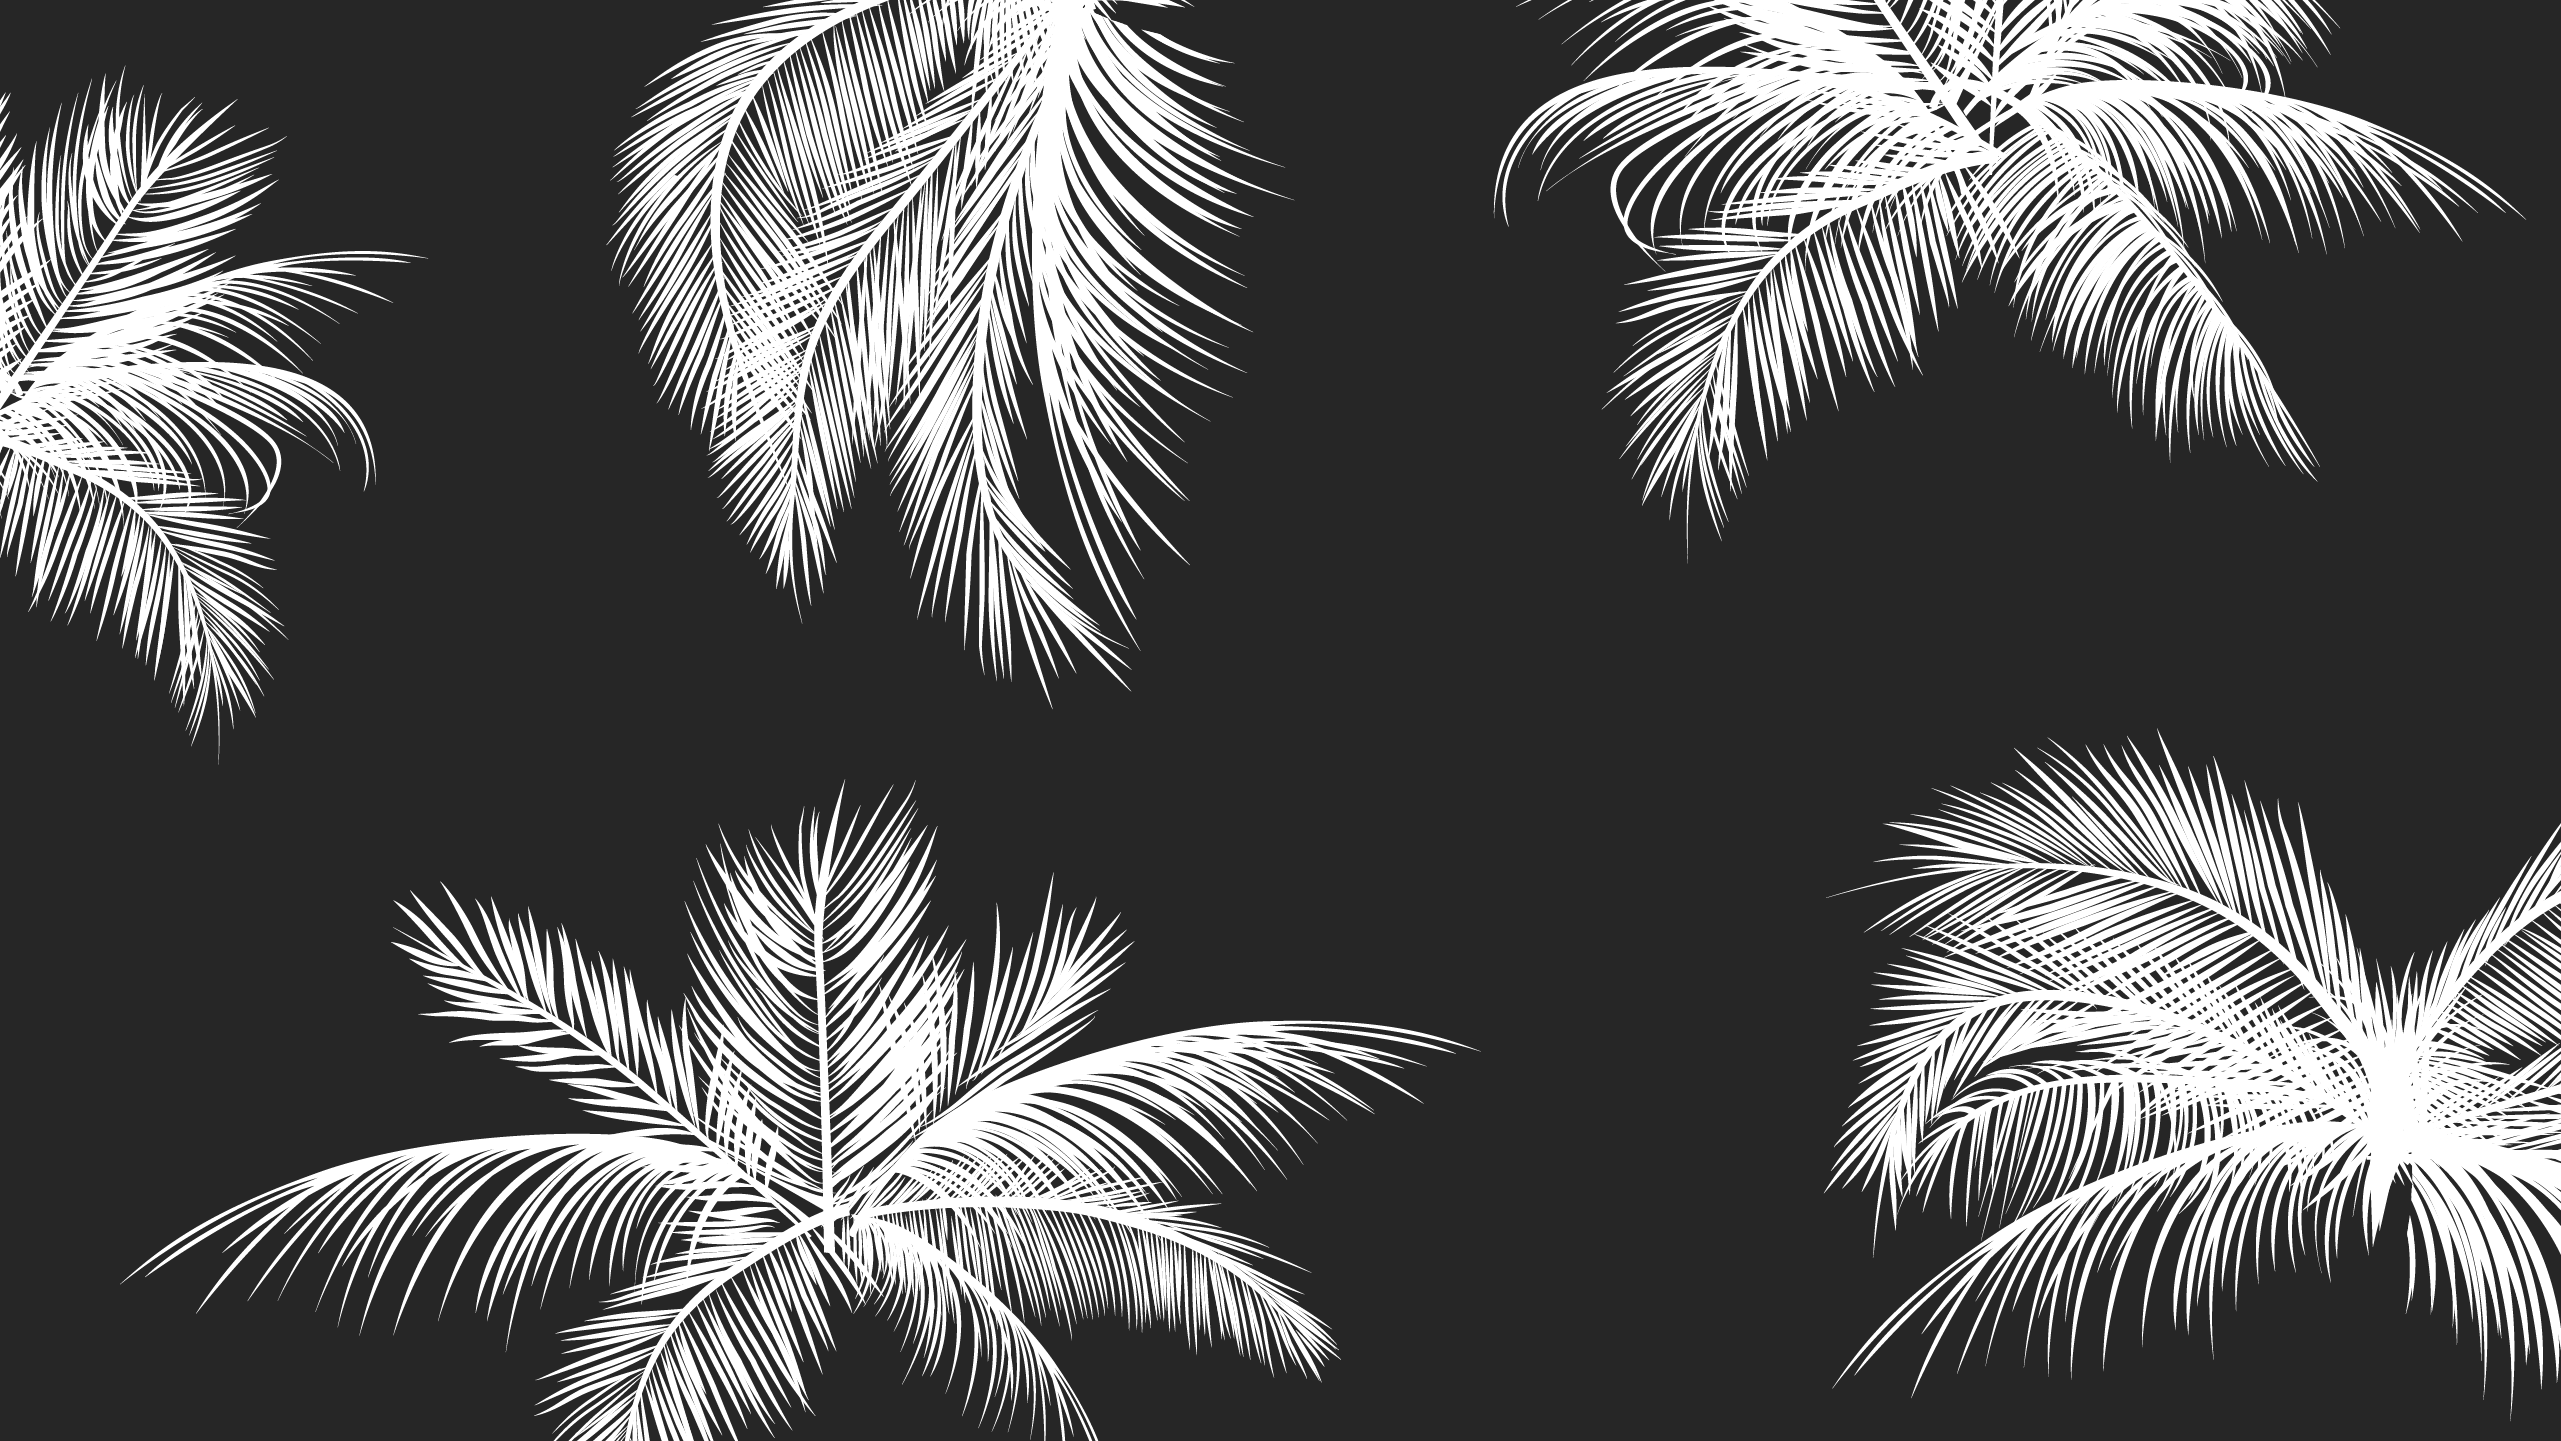 Get Your May 2015 Free Desktop and Mobile Wallpapers Now